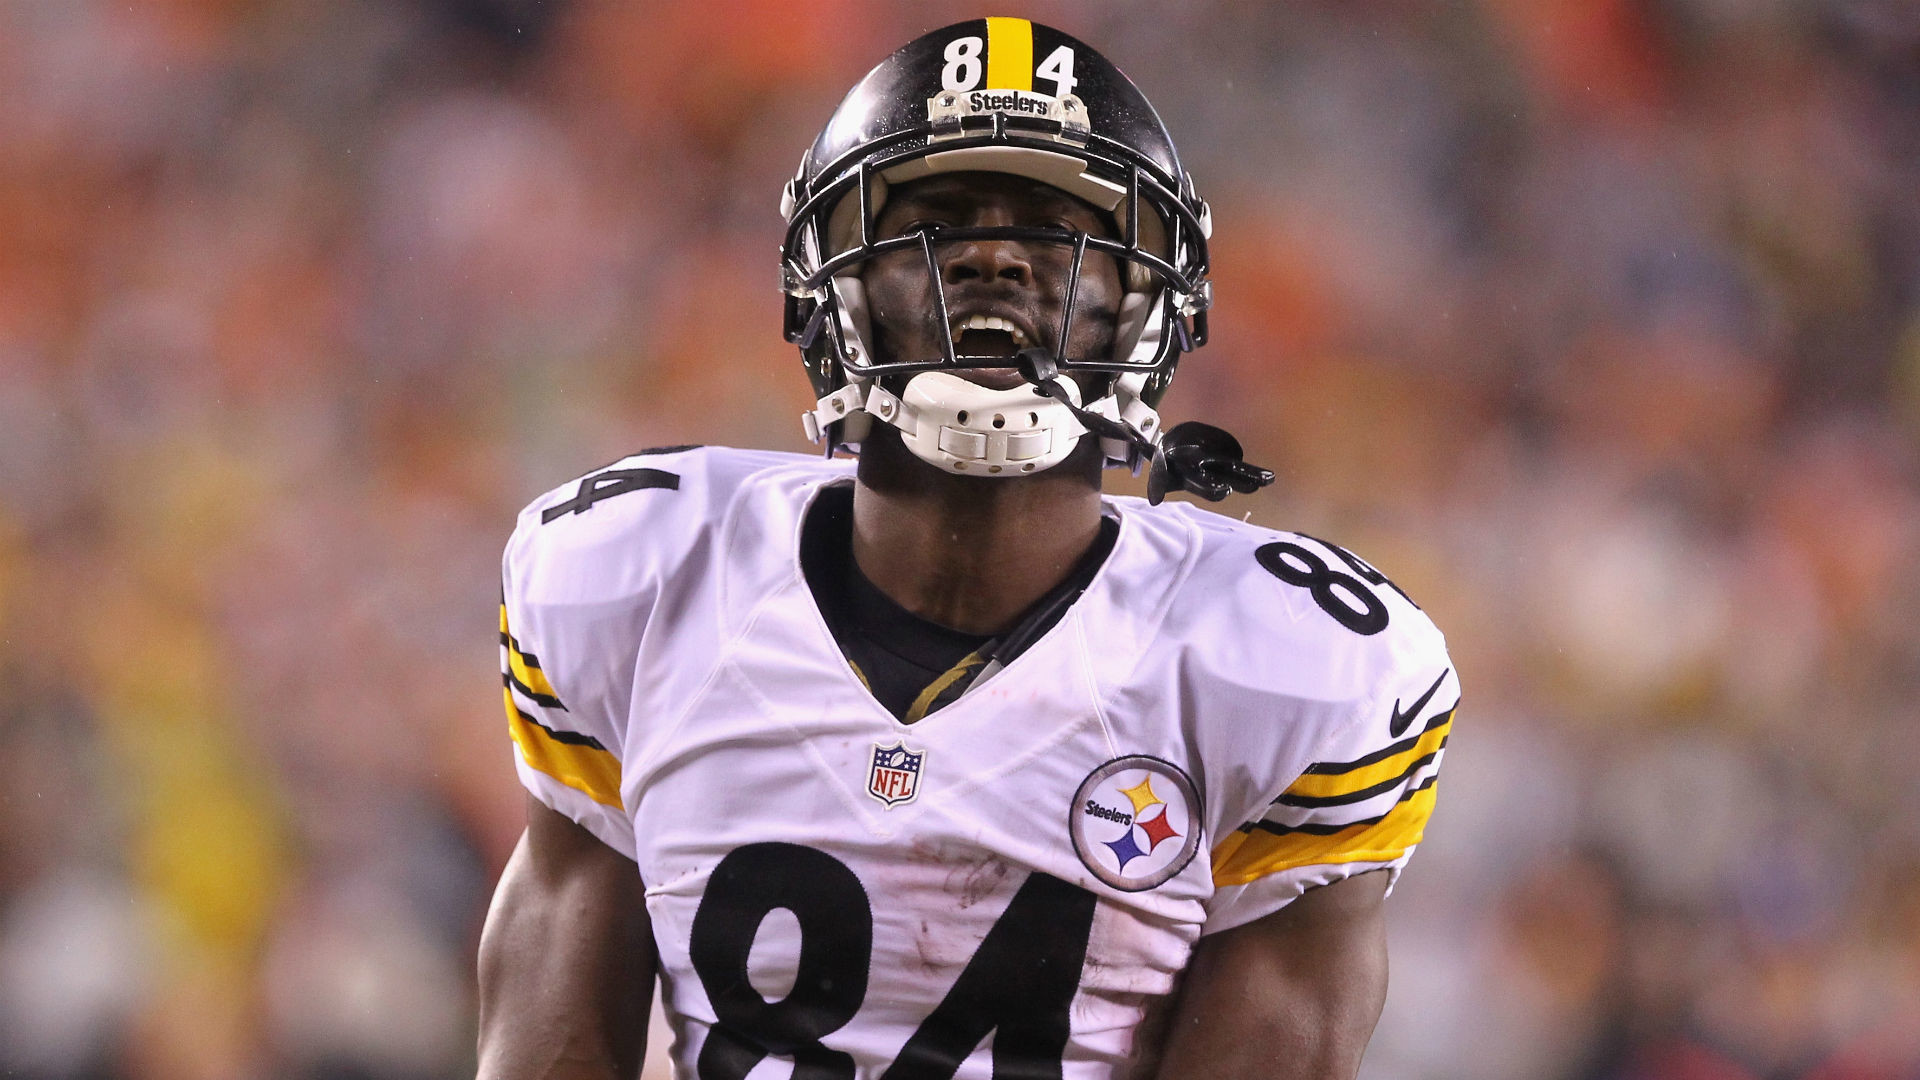 Steelers make Antonio Brown highest-paid WR in NFL, reports say | NFL |  Sporting News